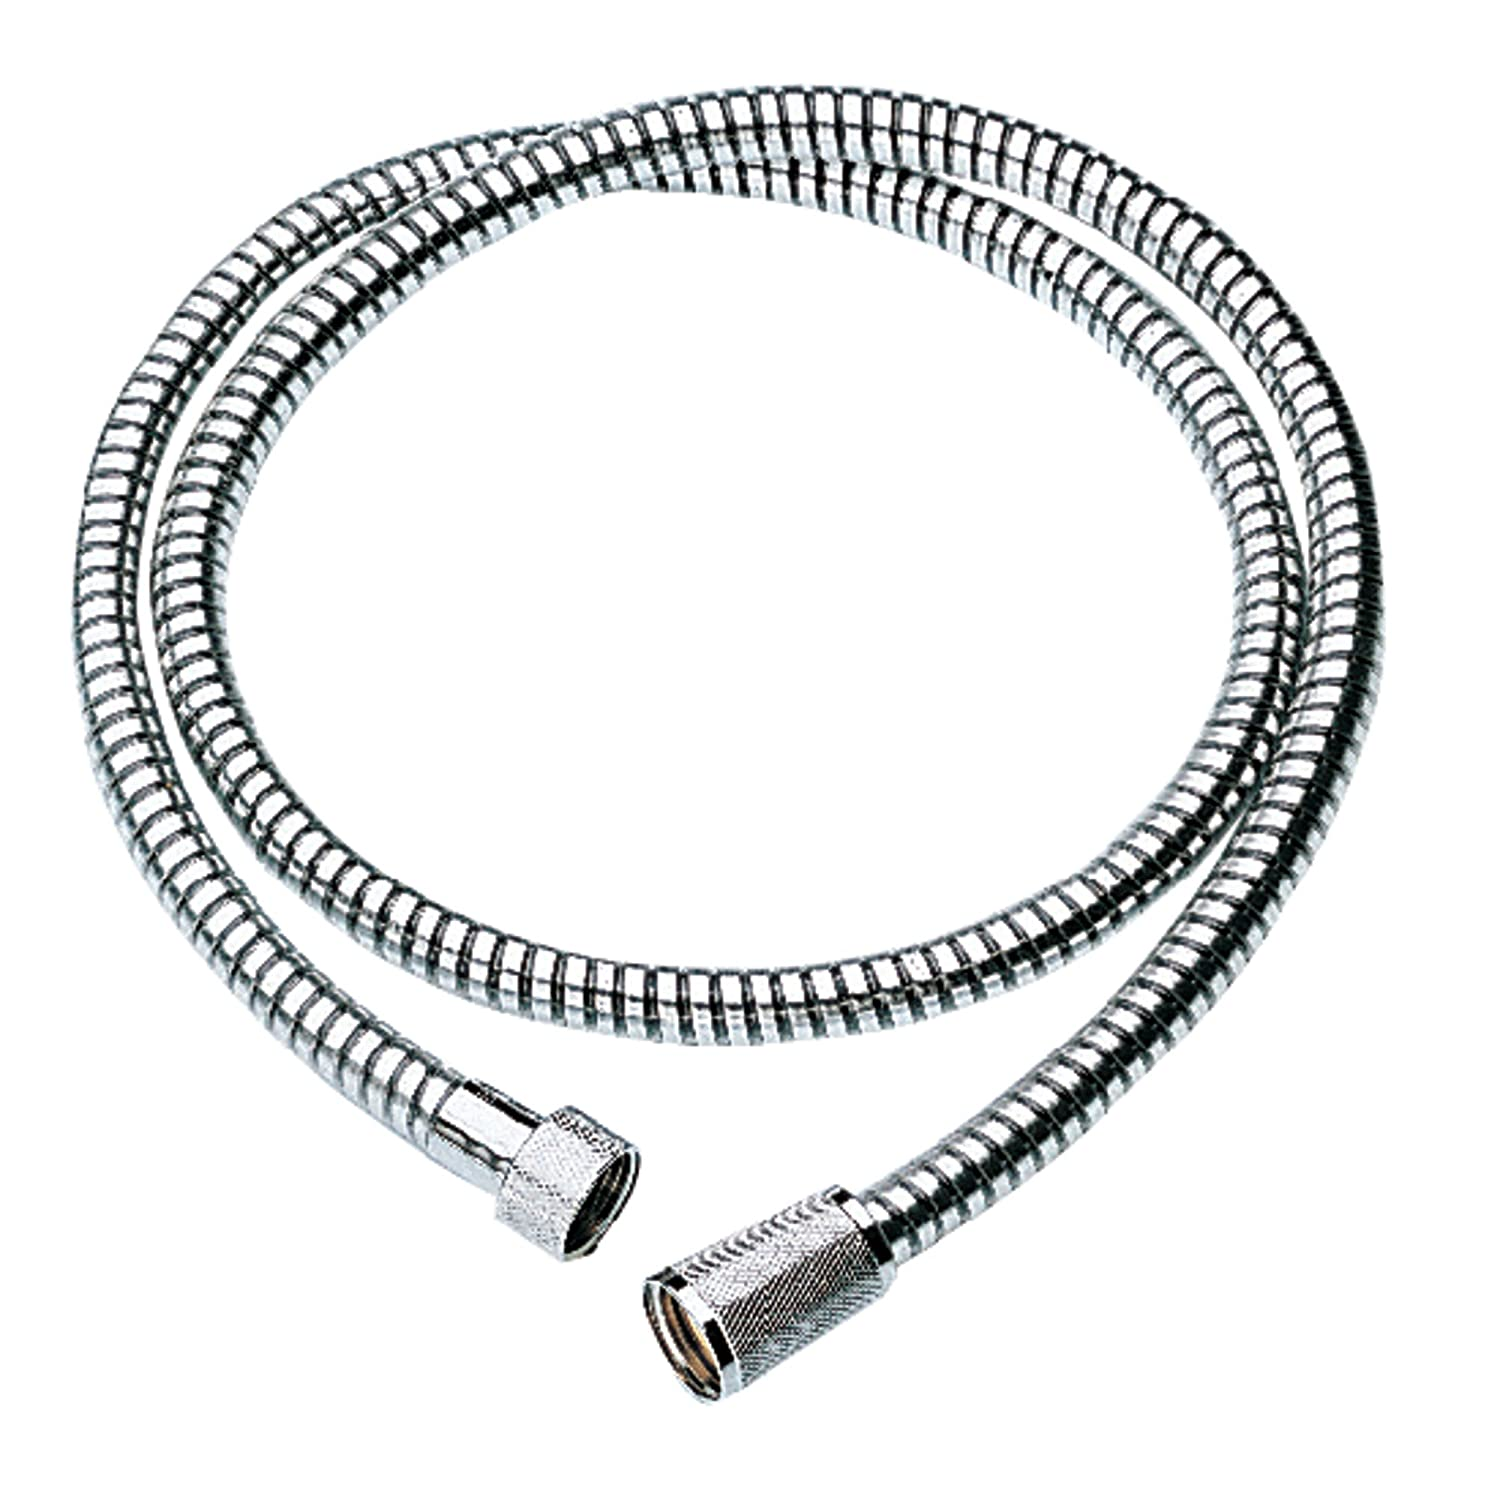 GROHE 28151000 | Relaxaflex Shower Hose | 1500mm: Amazon.co.uk: DIY U0026 Tools